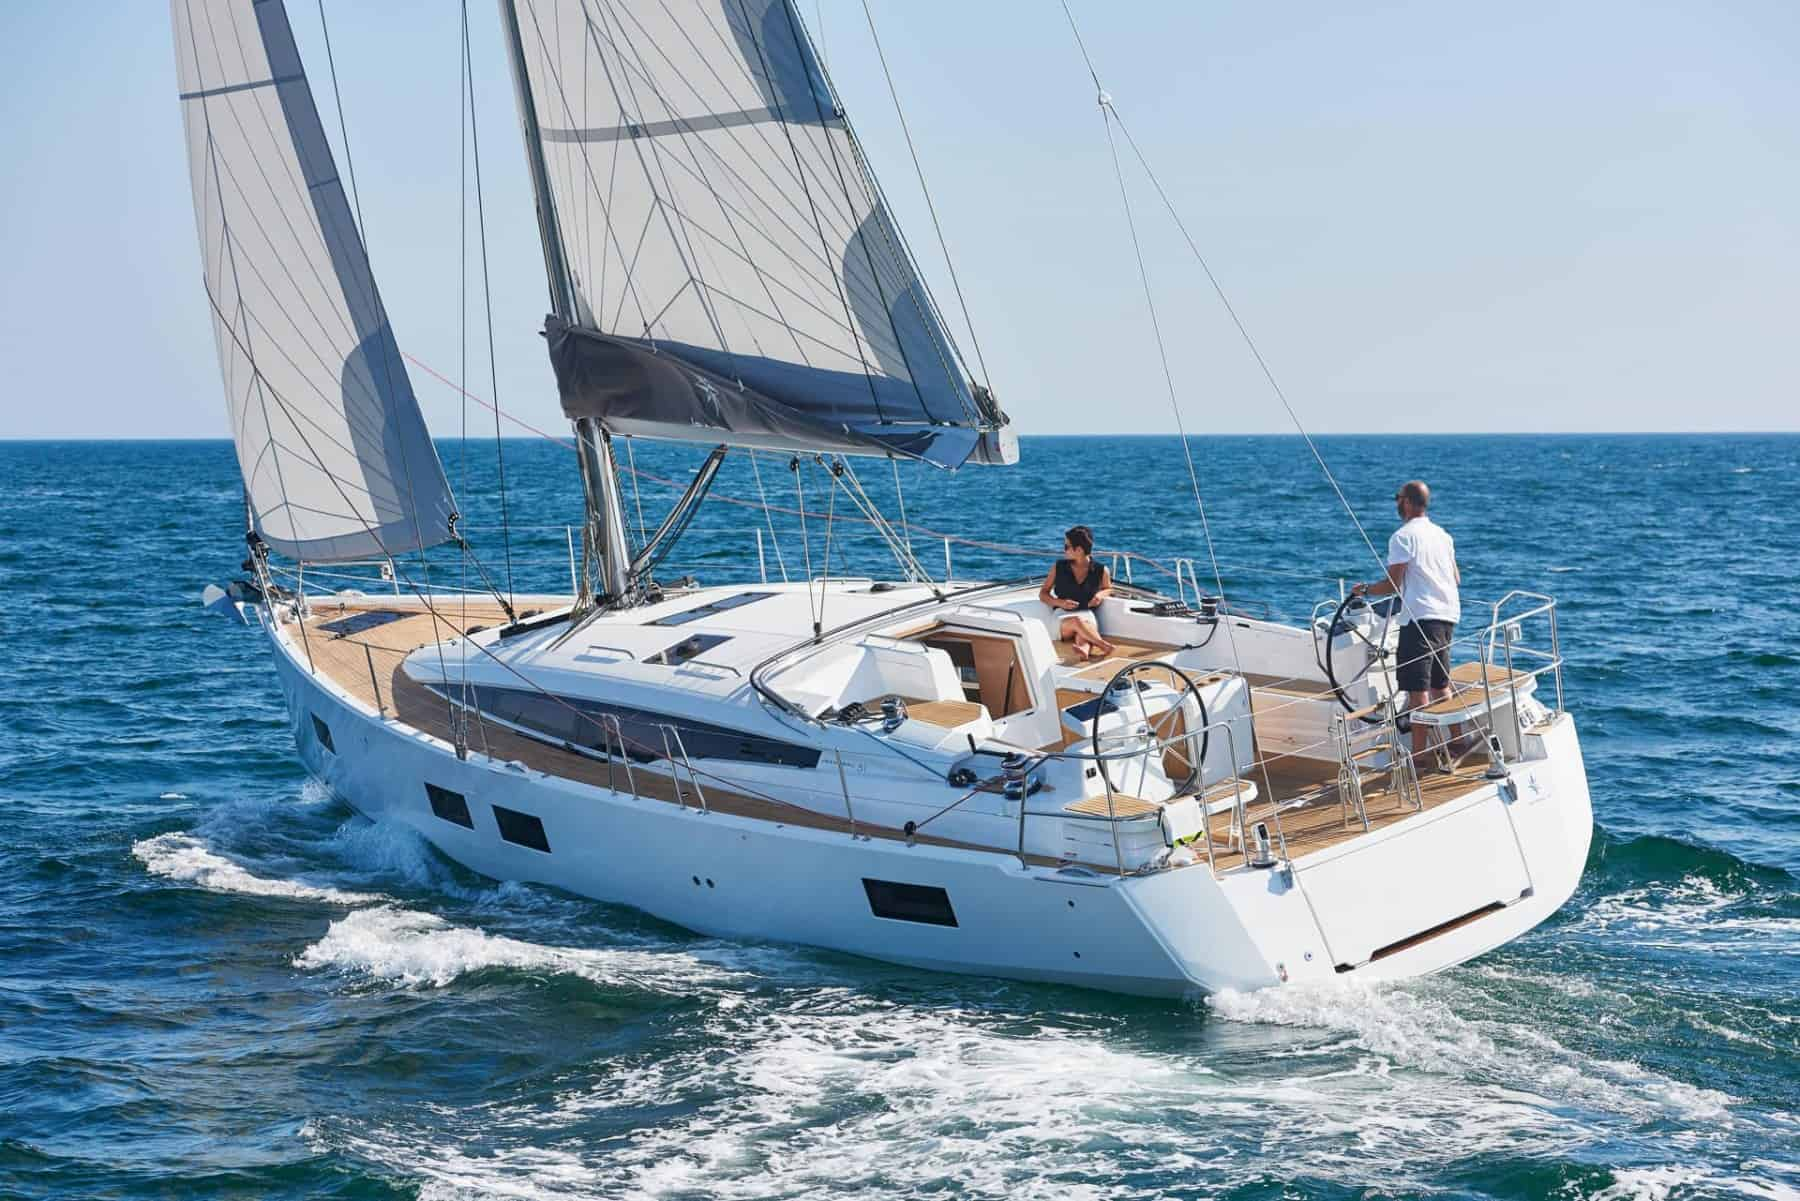 Jeanneau-51-exterior-5-charter-ownership-yacht